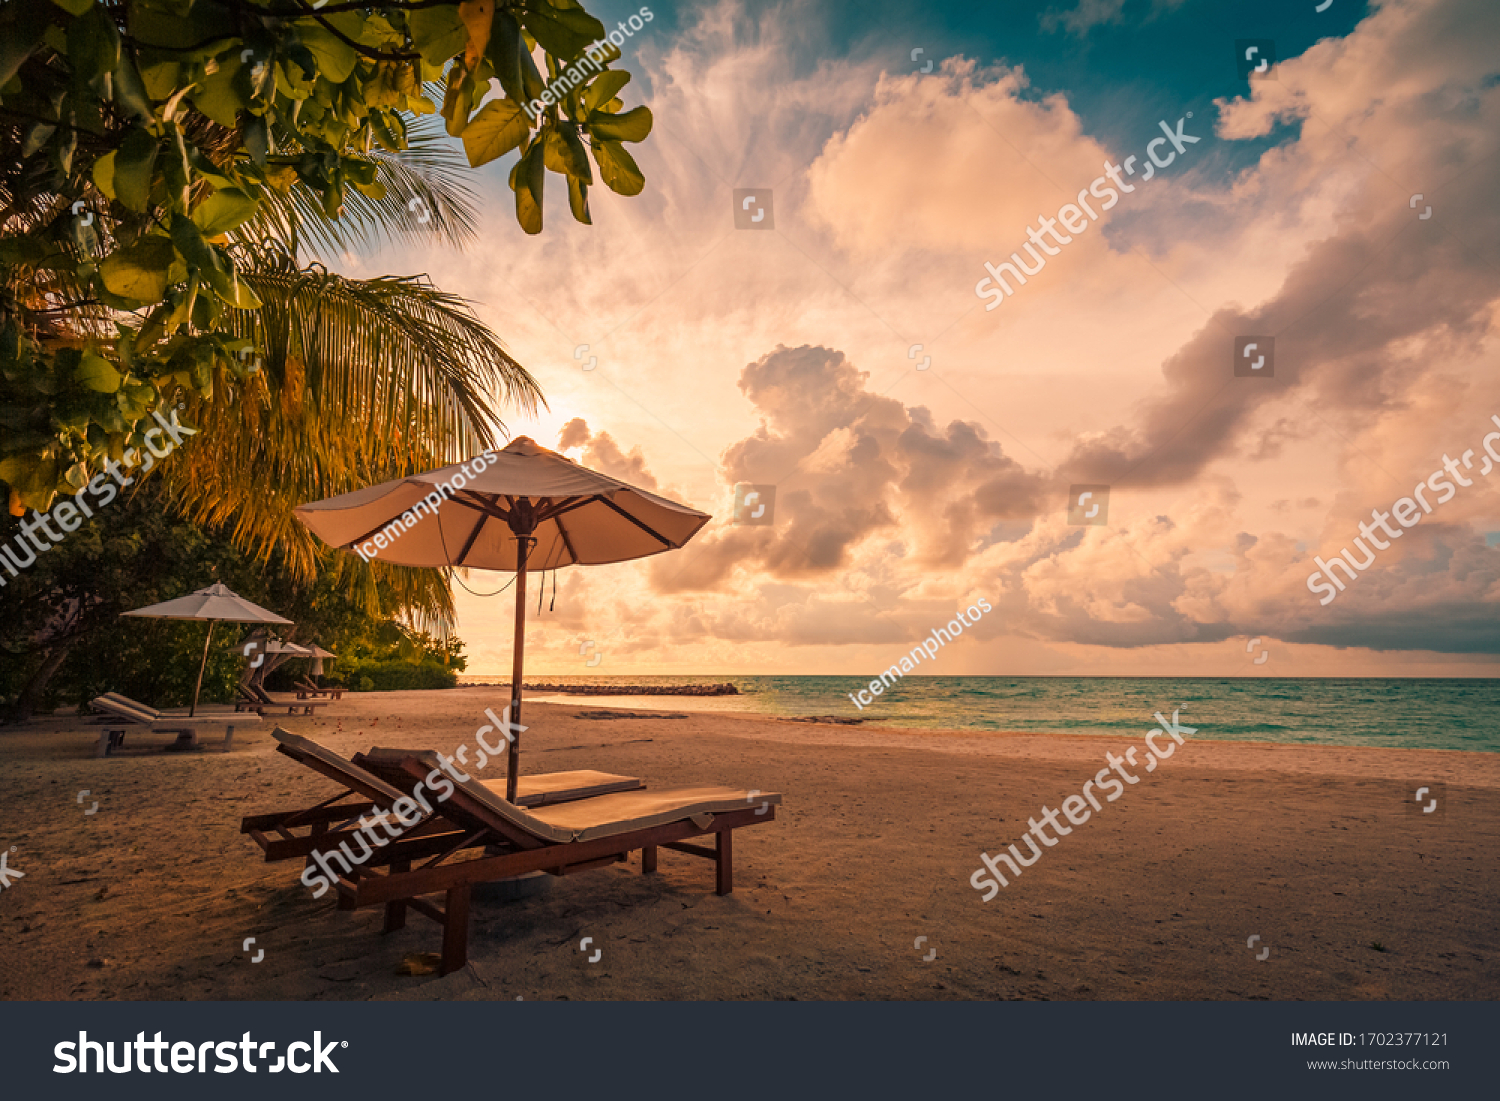 Beautiful beach. Chairs on the sandy beach near the sea. Summer holiday and vacation concept for tourism. Inspirational tropical landscape. Tranquil scenery, relaxing beach, tropical landscape design #1702377121